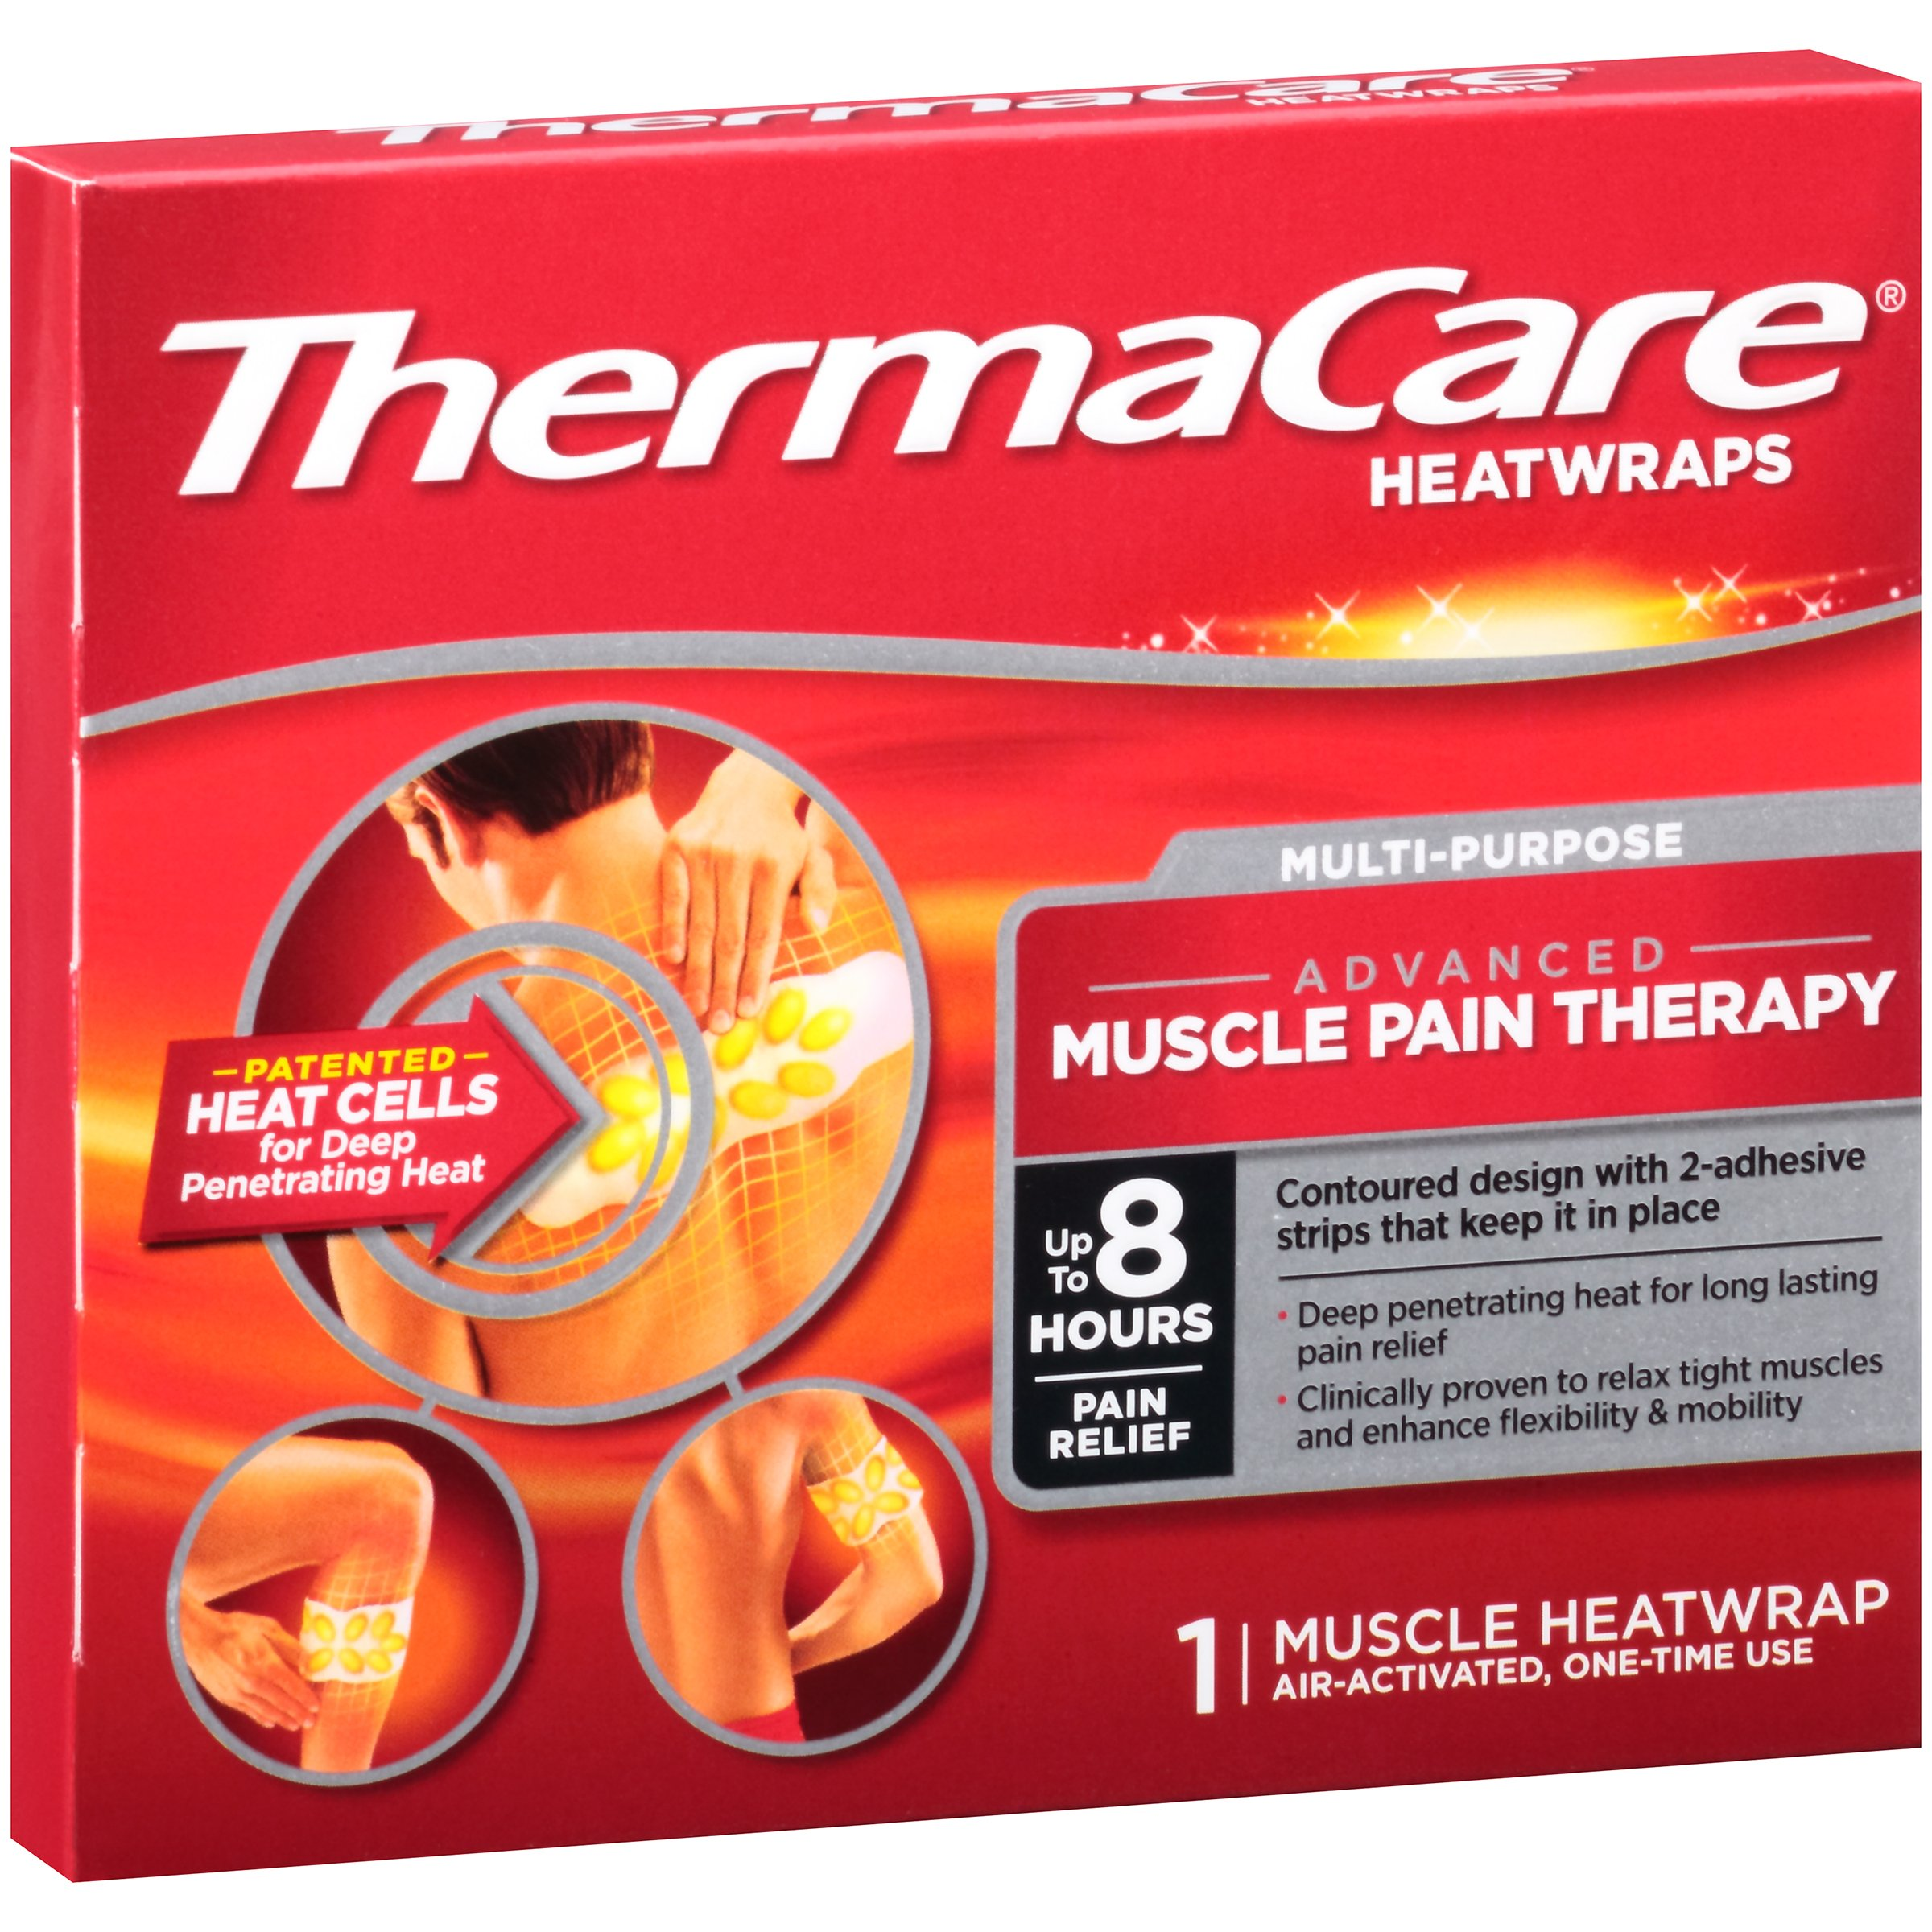 ThermaCare Advanced Multi-Purpose Muscle Pain Therapy (1 Count) Heatwraps, Up to 8 Hours of Pain Relief, Temporary Relief of Muscular Pains